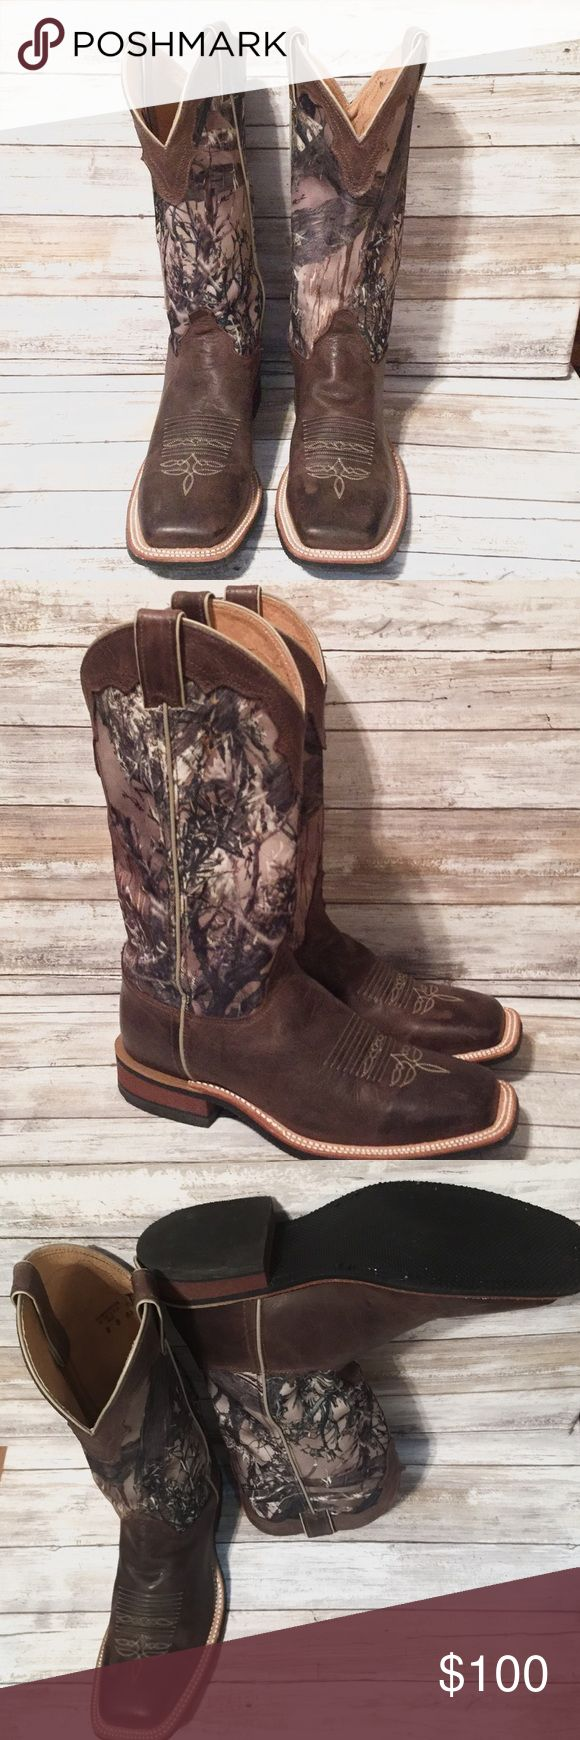 "Justin men's brown cowhide with camo cowboy boots Justin cowboy boots only worn twice by a size 9.5-10 woman. J-Flex flexible comfort system insole with an internal flexible midsole for comfort. 13"" Tru Timber MC2 Green camo upper with worn brown collar and chocolate brown cowhide boot. All directional durable 10 iron performance outsole for traction. Square toe. Men's Size 8D Justin Boots Shoes Heeled Boots"